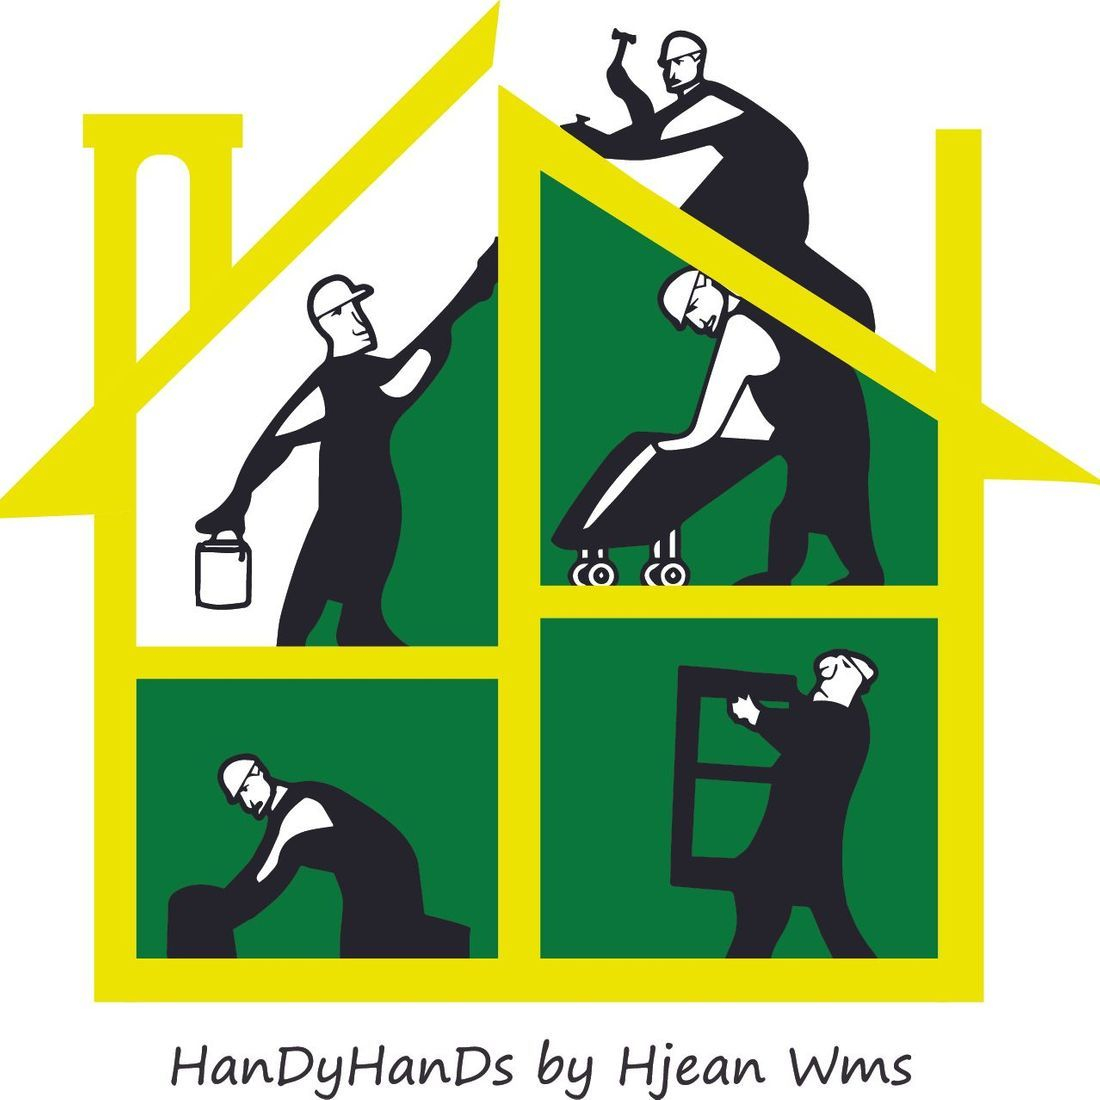 HanDy HanDs Pro Skilled Handyman Services